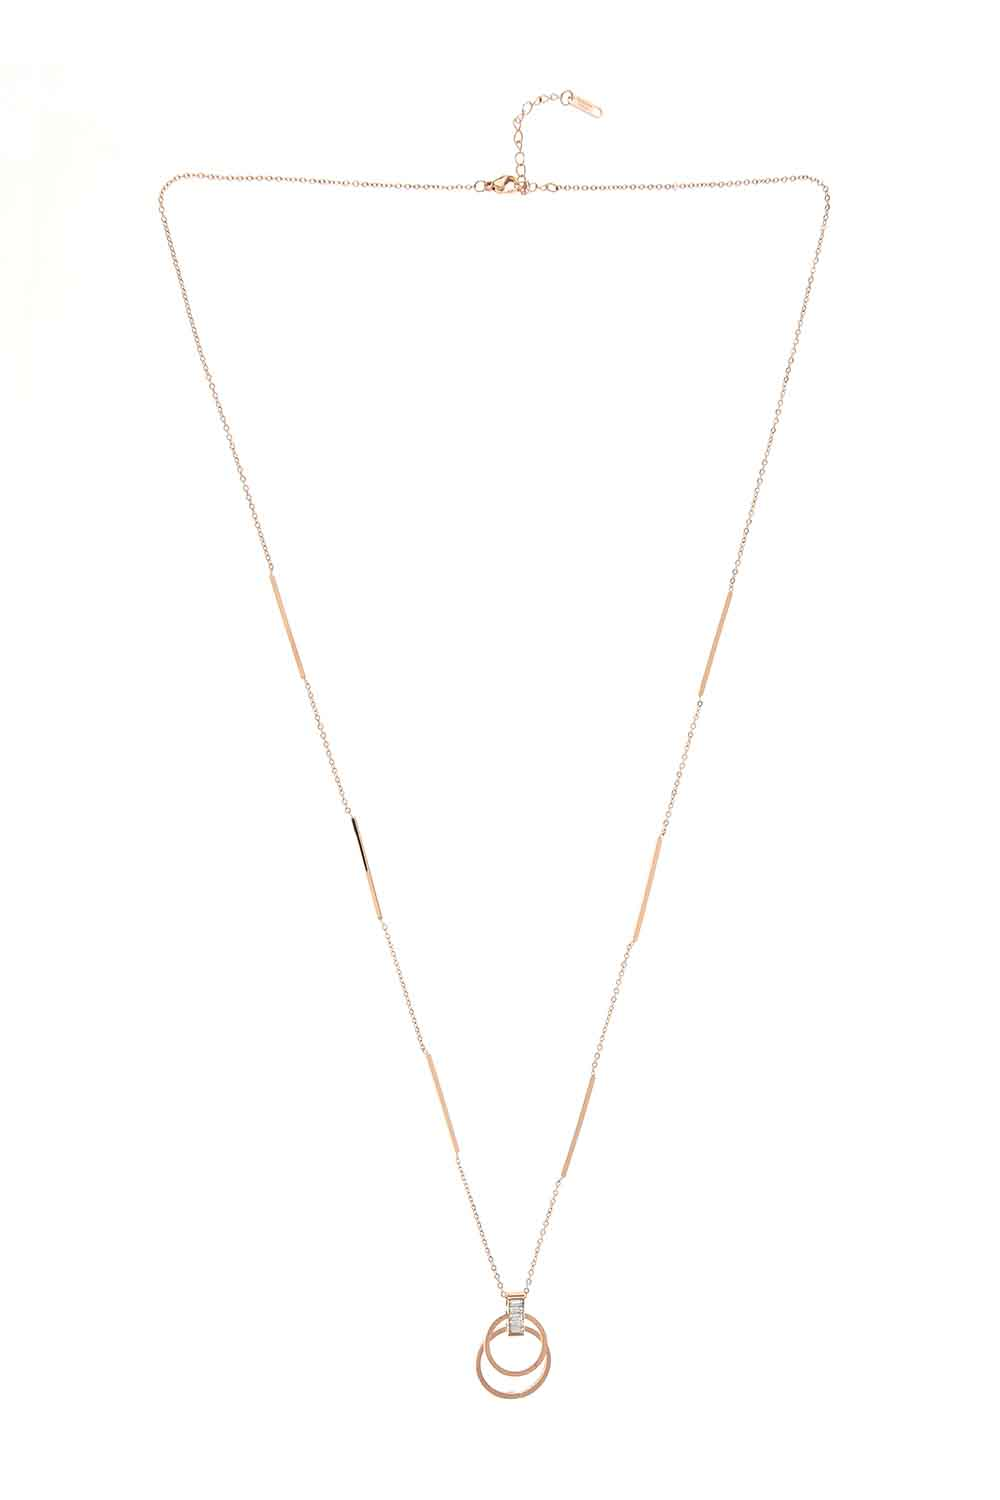 MIZALLE Ring Steel Necklace (St) (1)